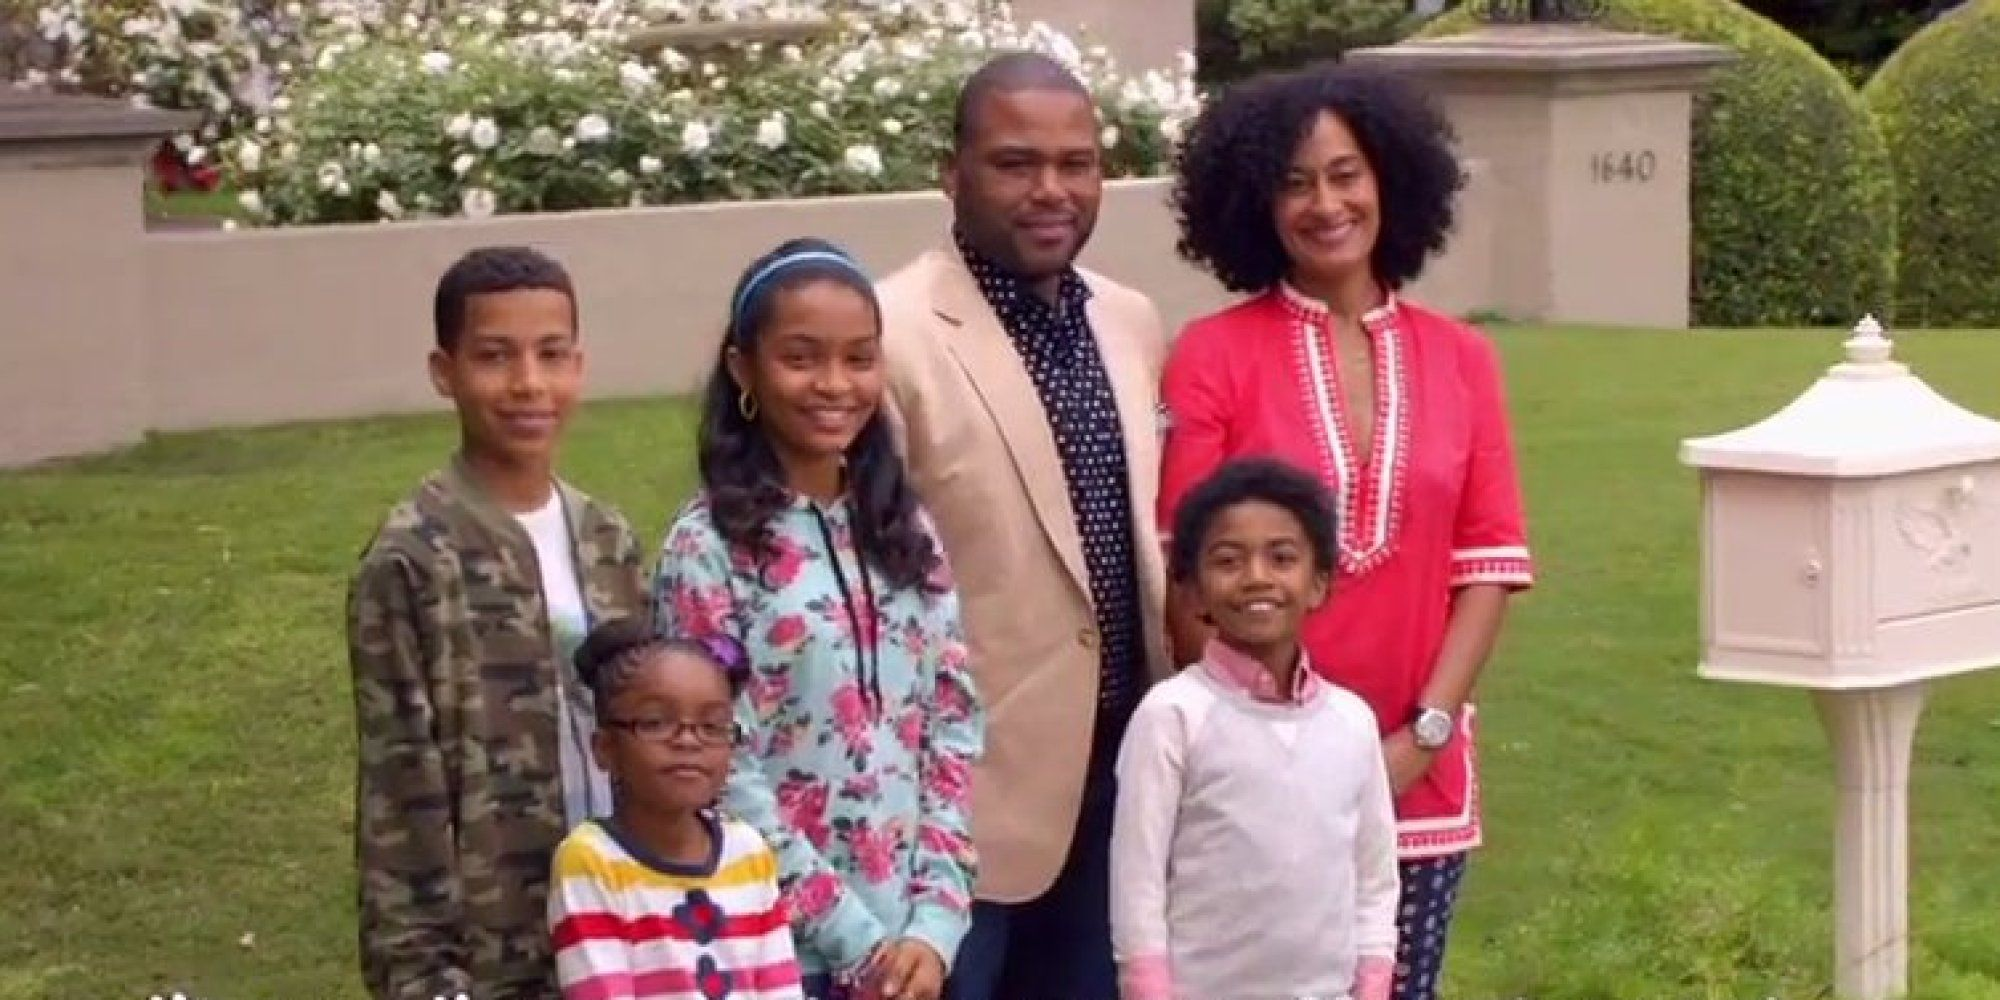 WATCH: The Trailer For ABC's New Sitcom 'Blackish' | My